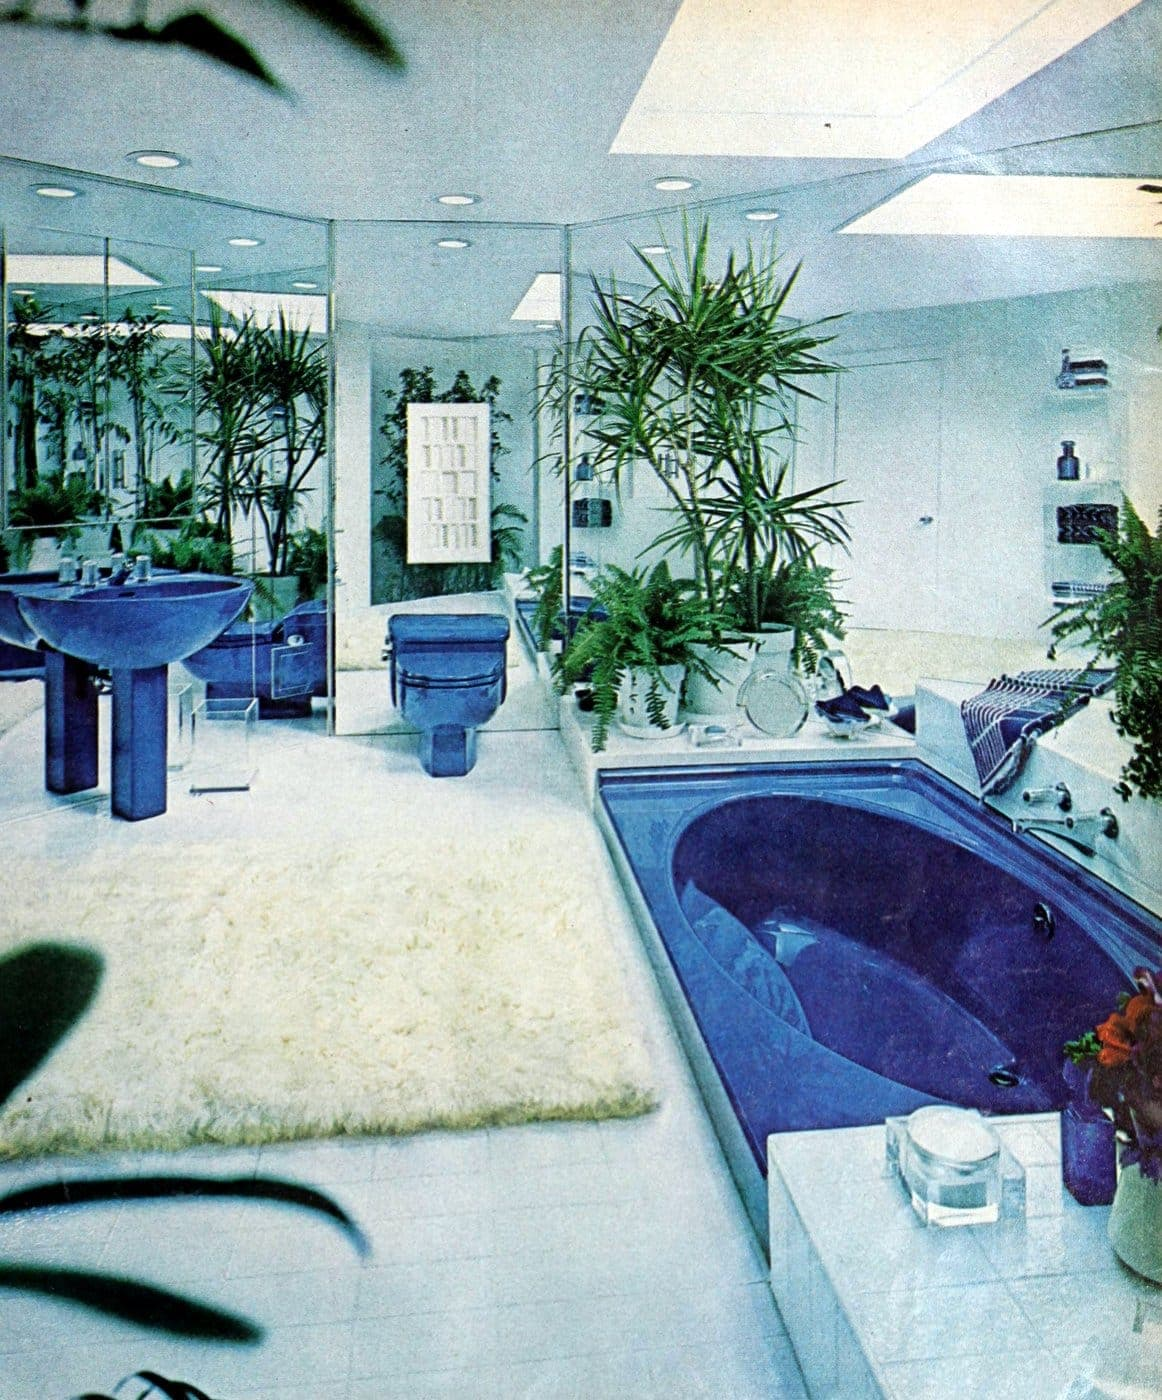 Big mirrored retro bathroom with blue tub sink and toilet - 1974